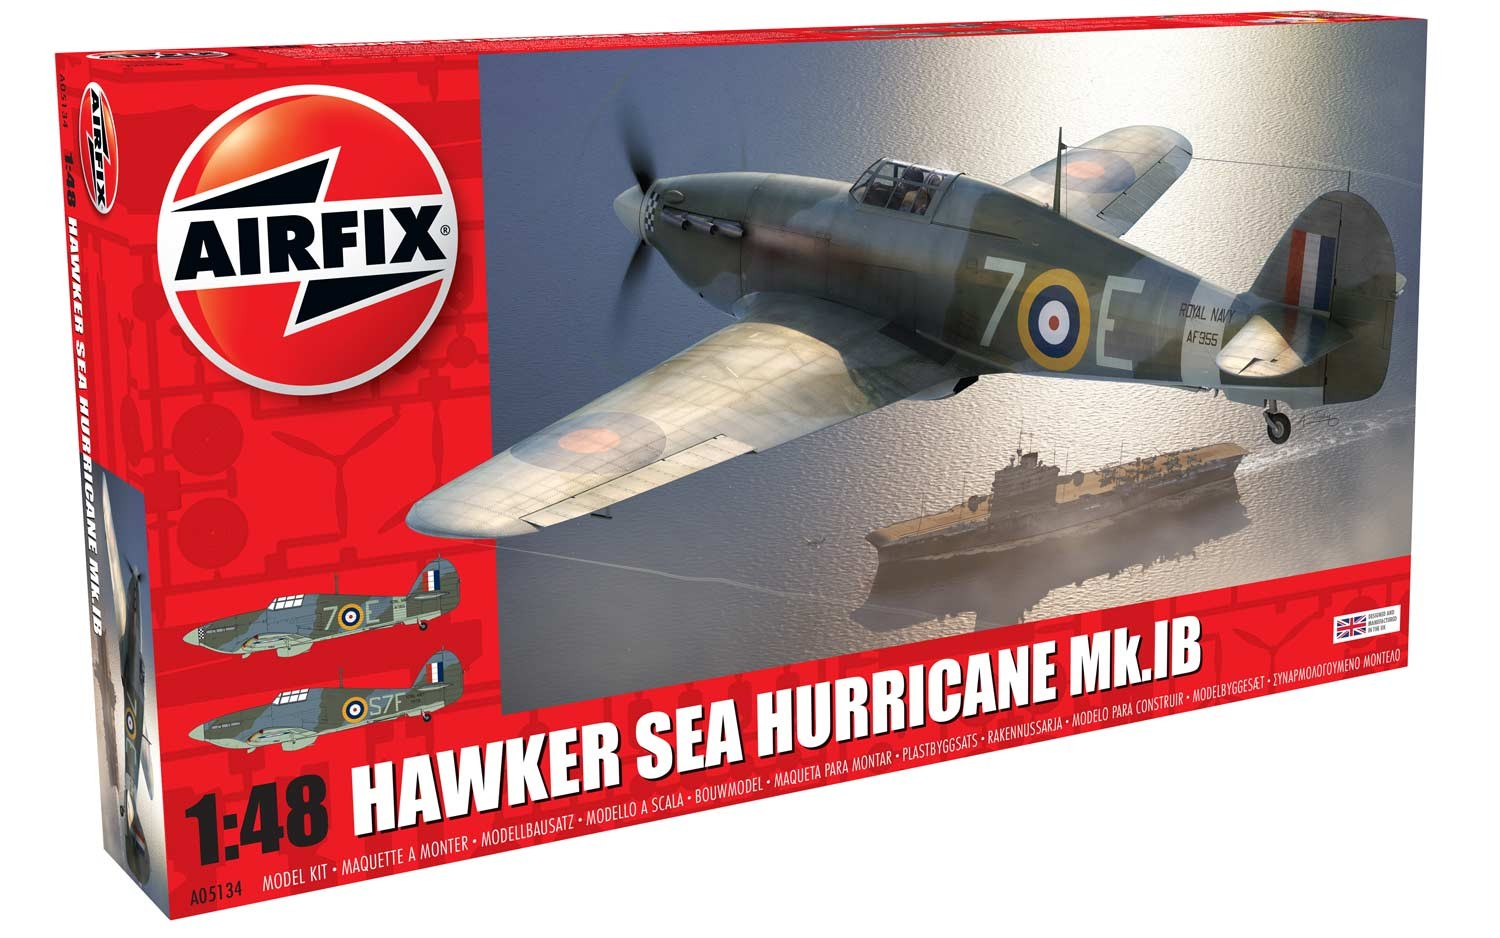 Airfix 1\48 Hawker Sea Hurricane MK.IB # 05134